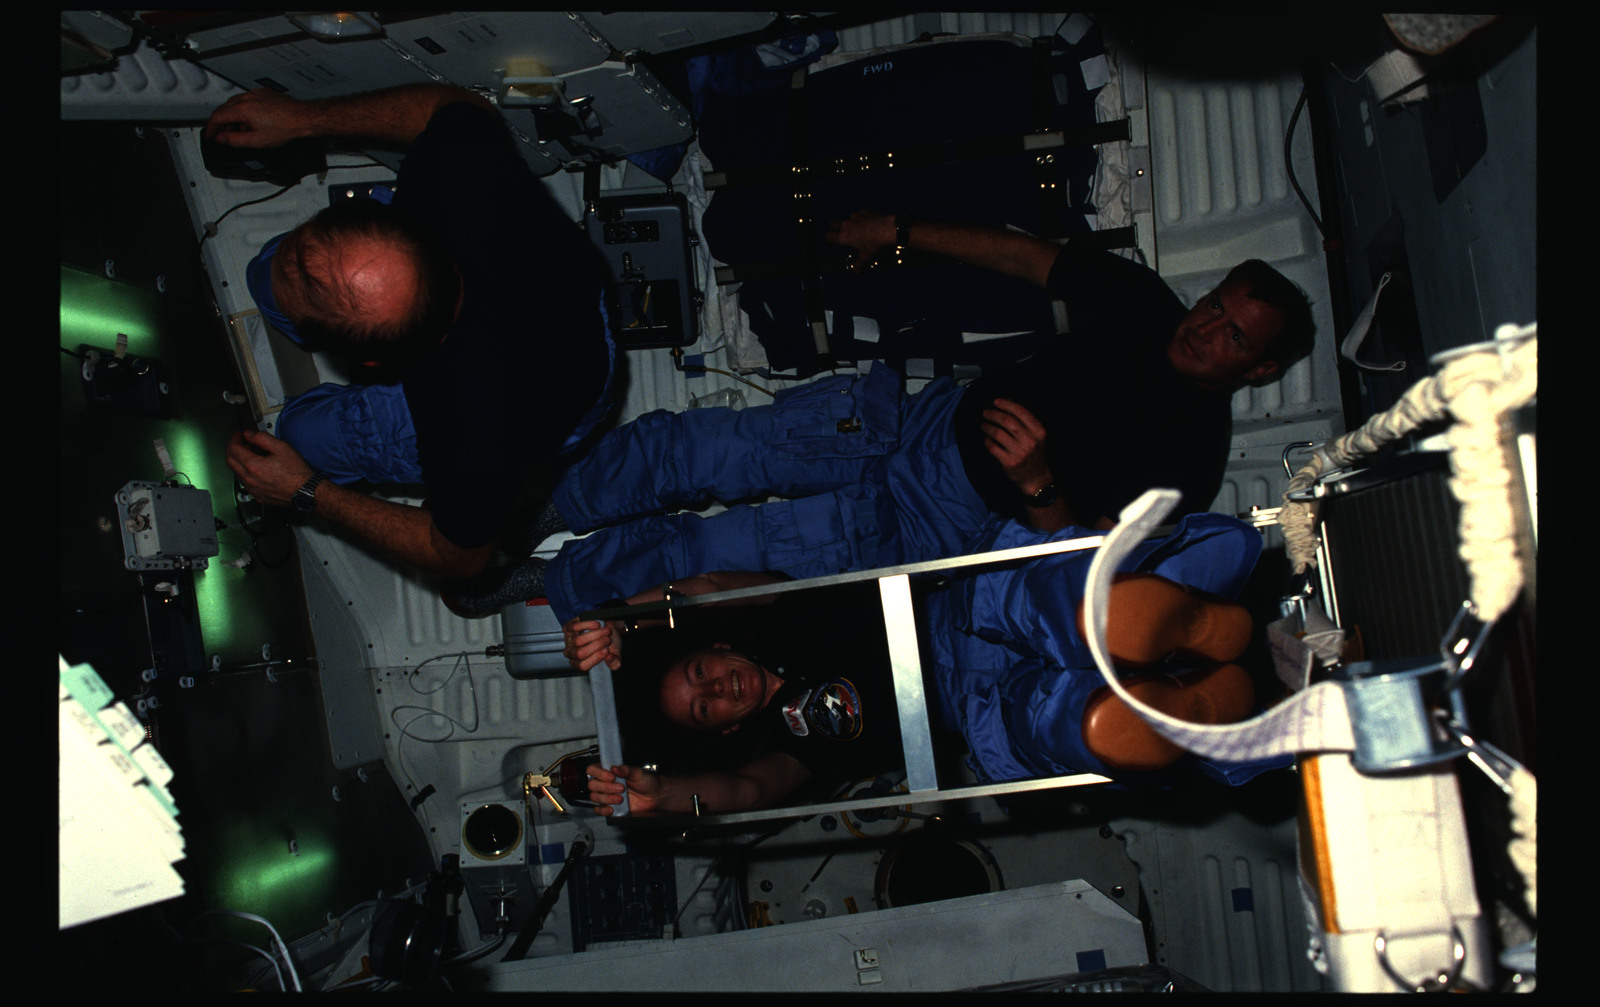 51A-08-027 - STS-51A - 51A activities